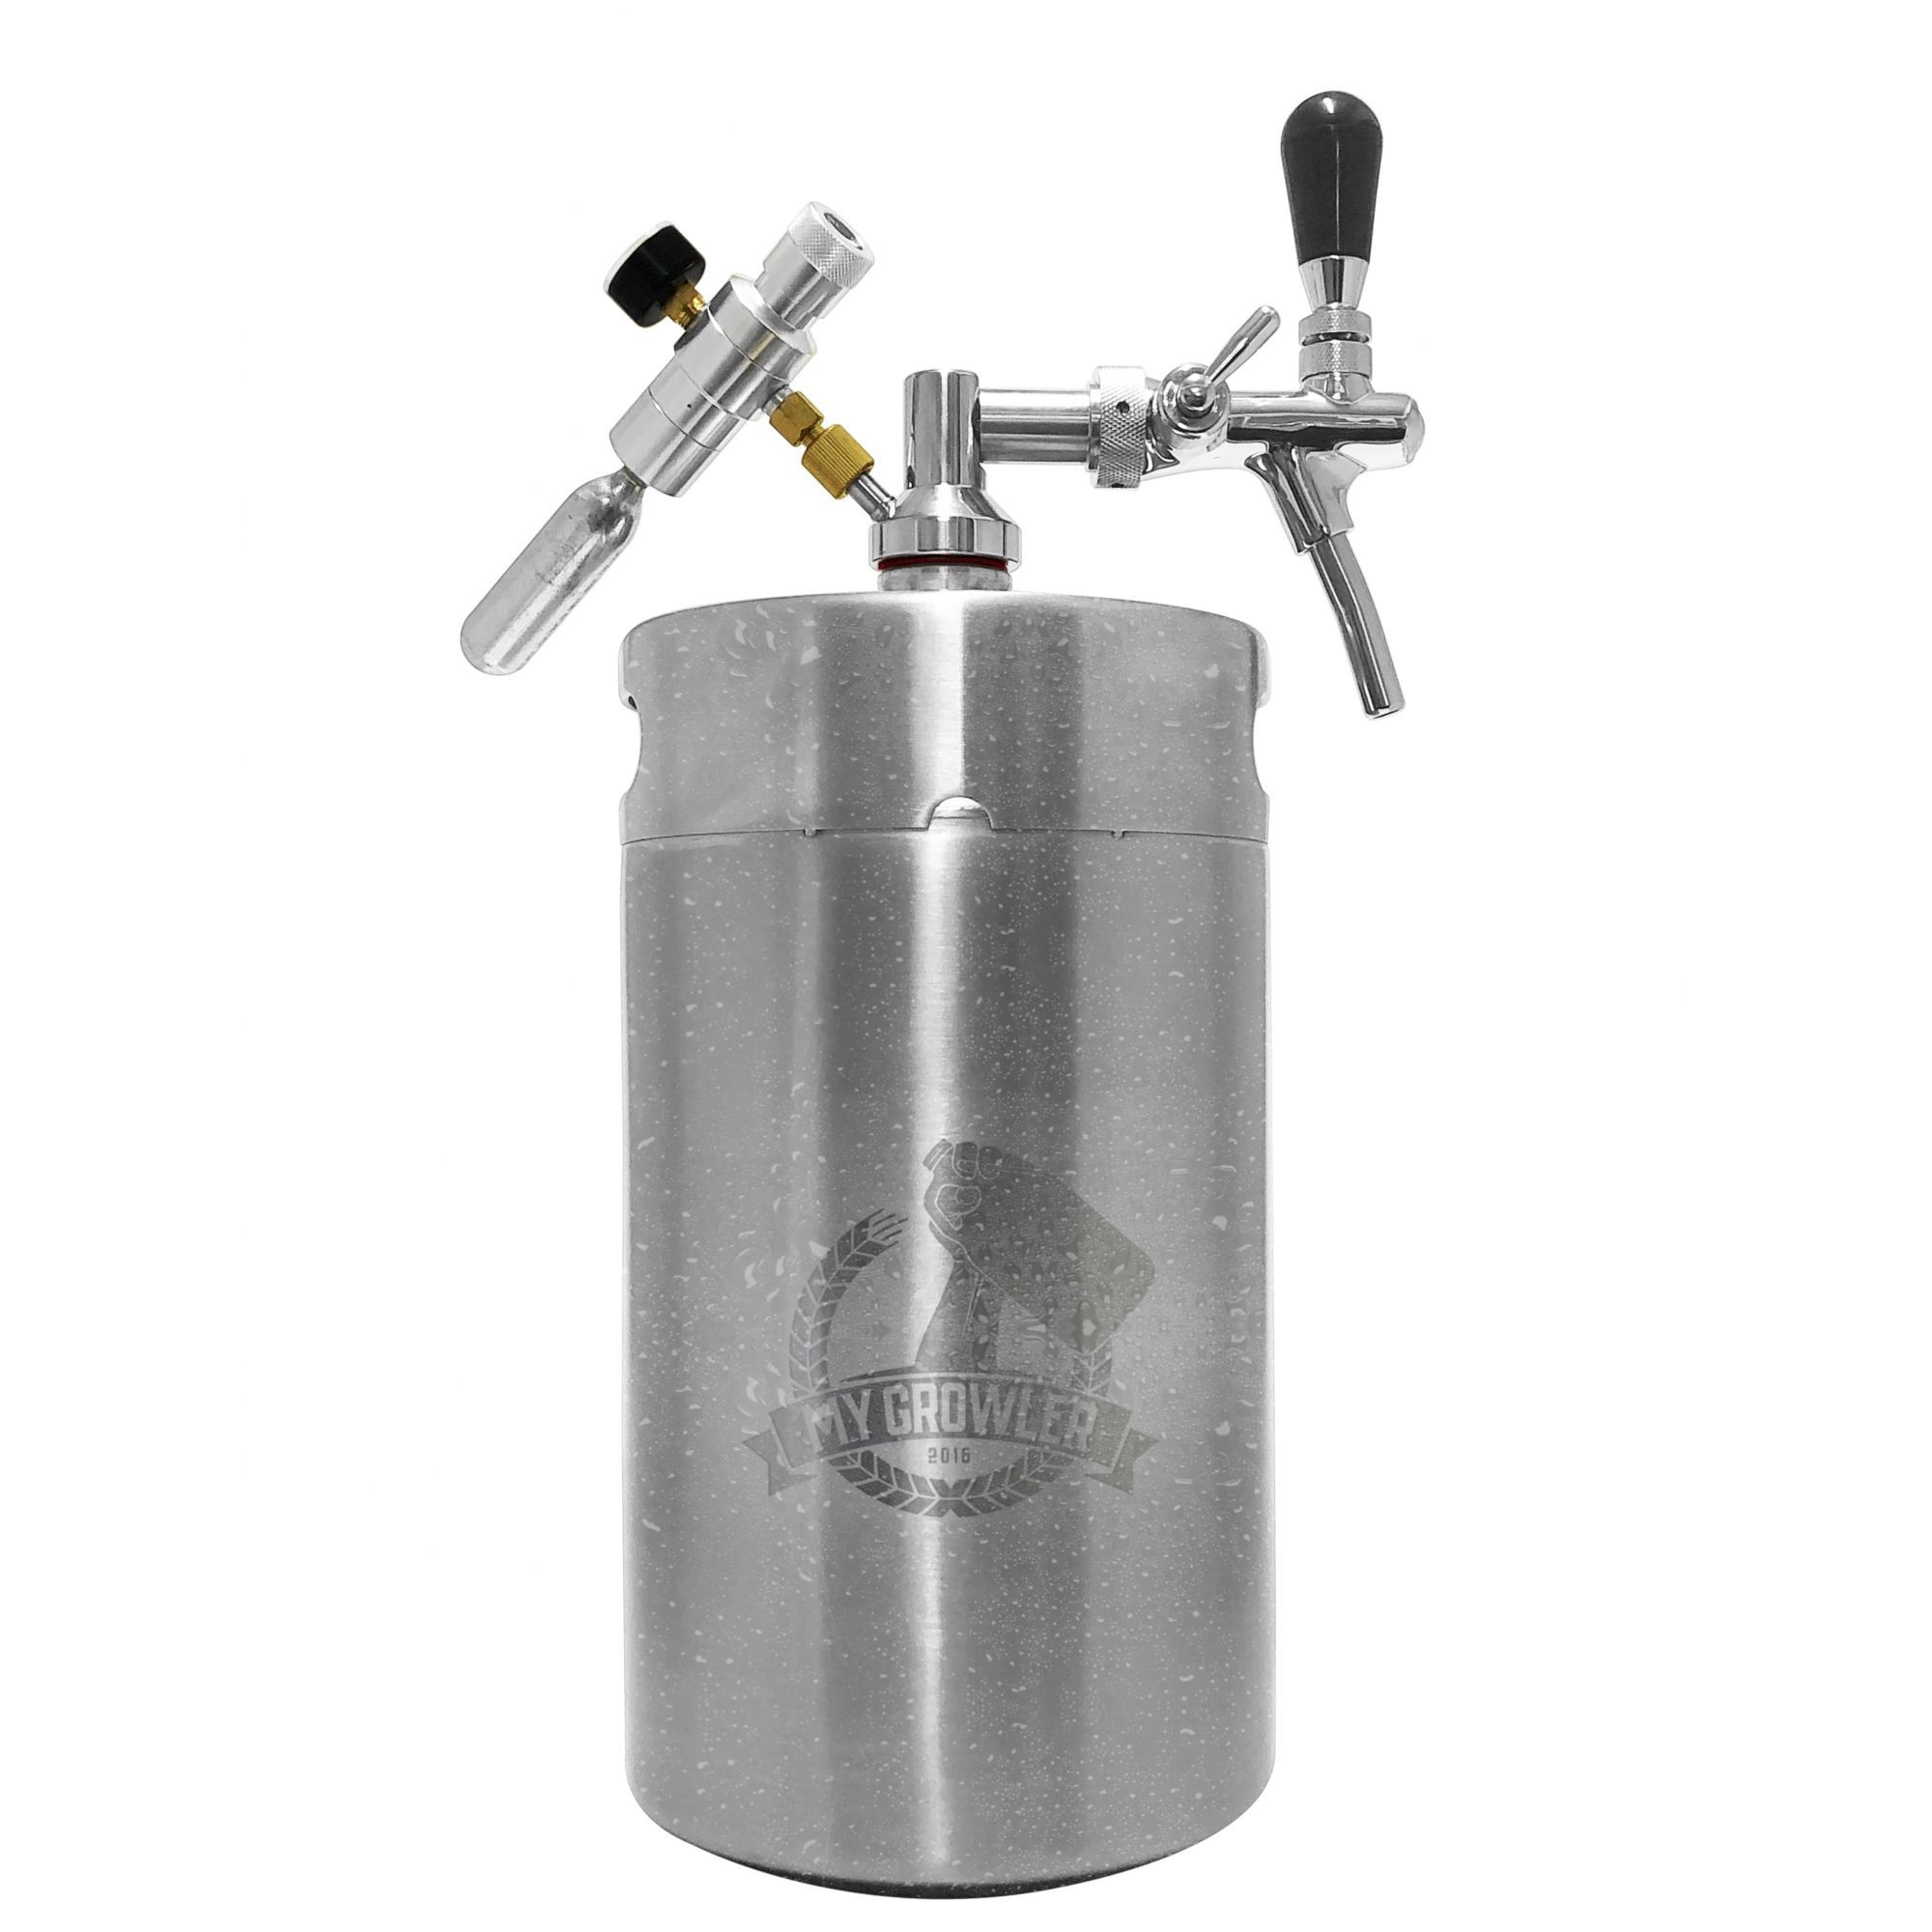 Kit My Keg Growler Inox 8l com Torneira Italiana Standard